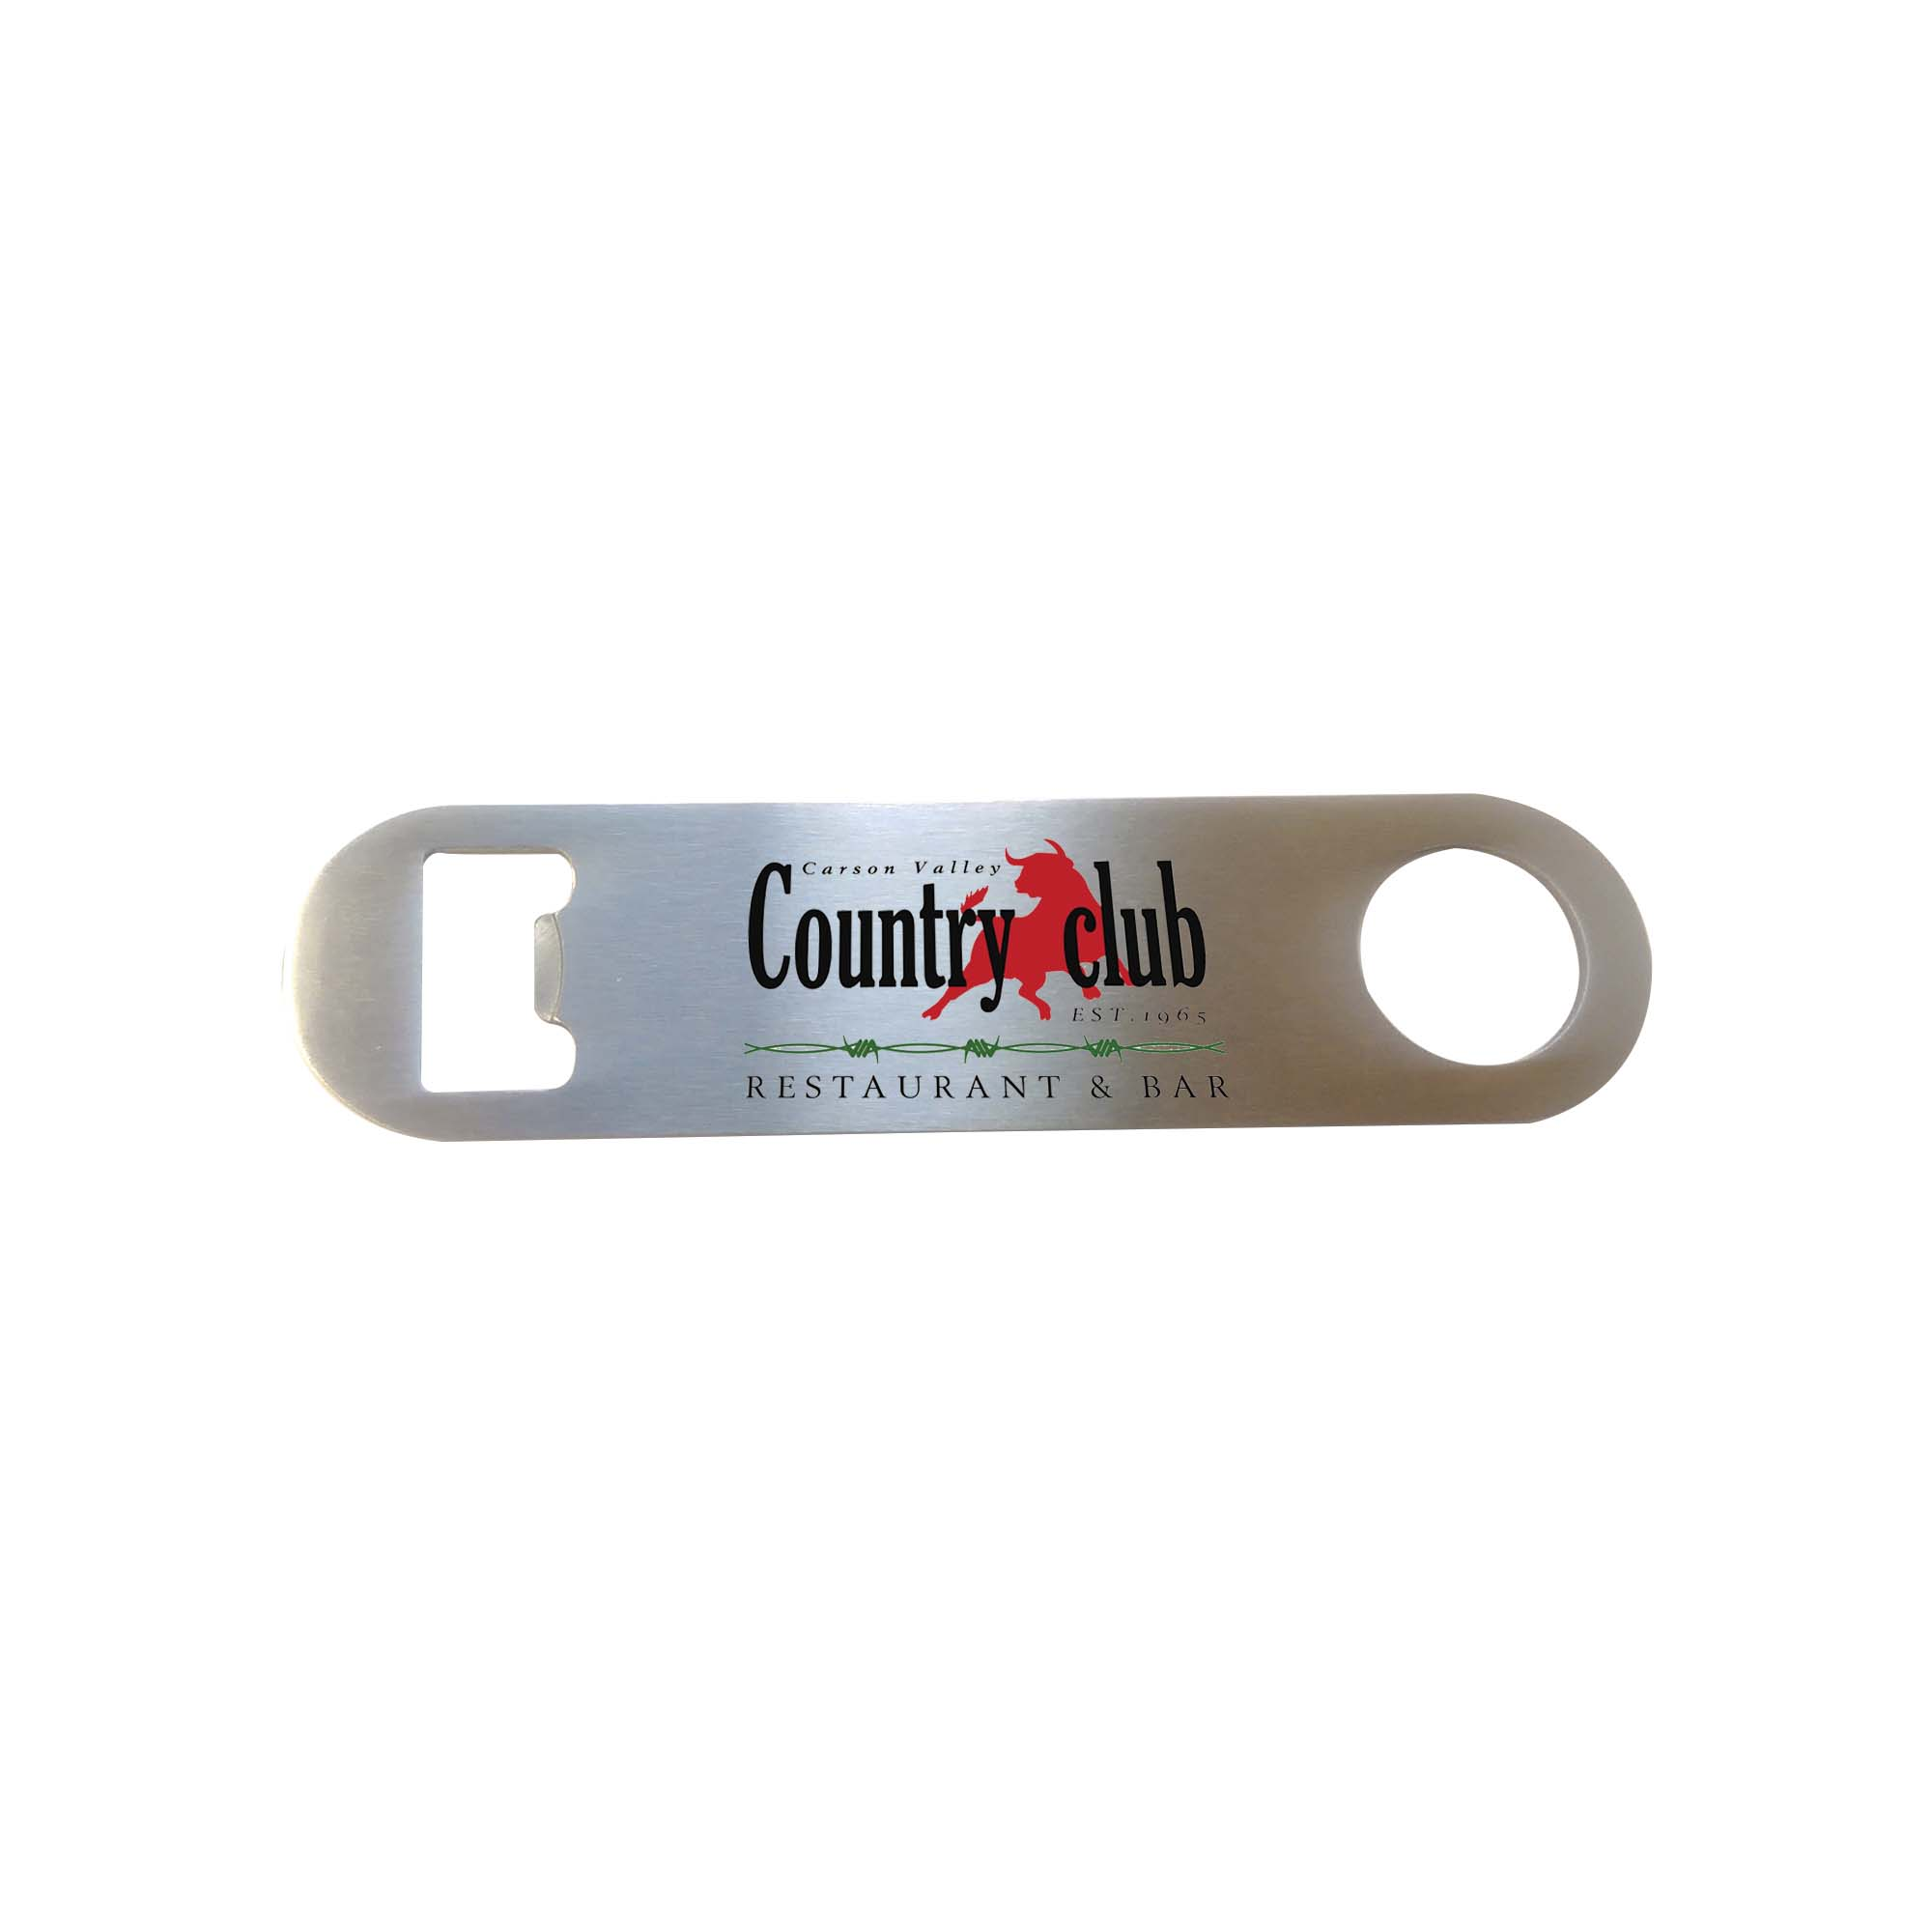 Mini Bar Blade (Pocket size)